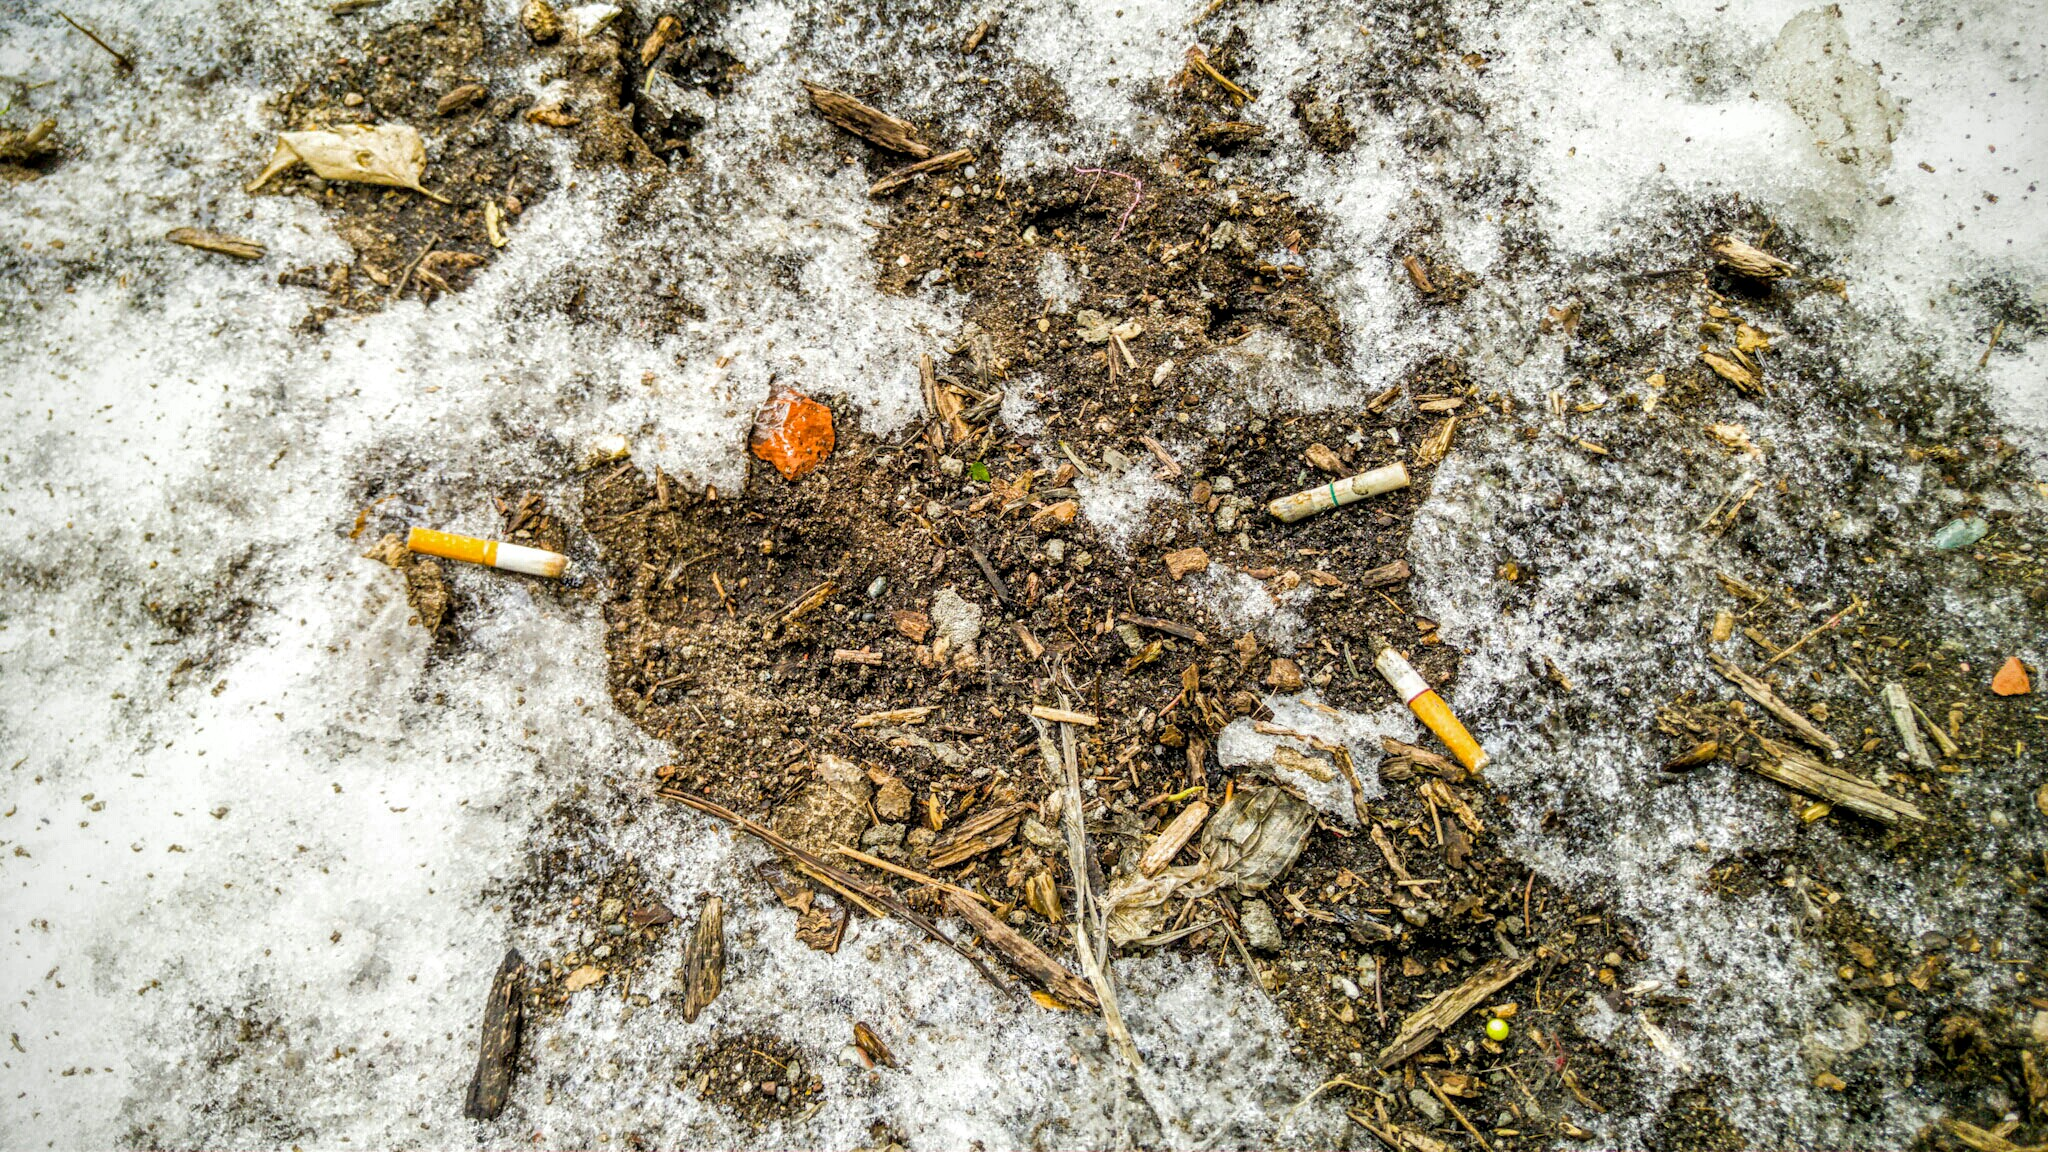 Cigarette butts. So many cigarette butts. They are - by far - the most common items that emerge after the snow recedes.